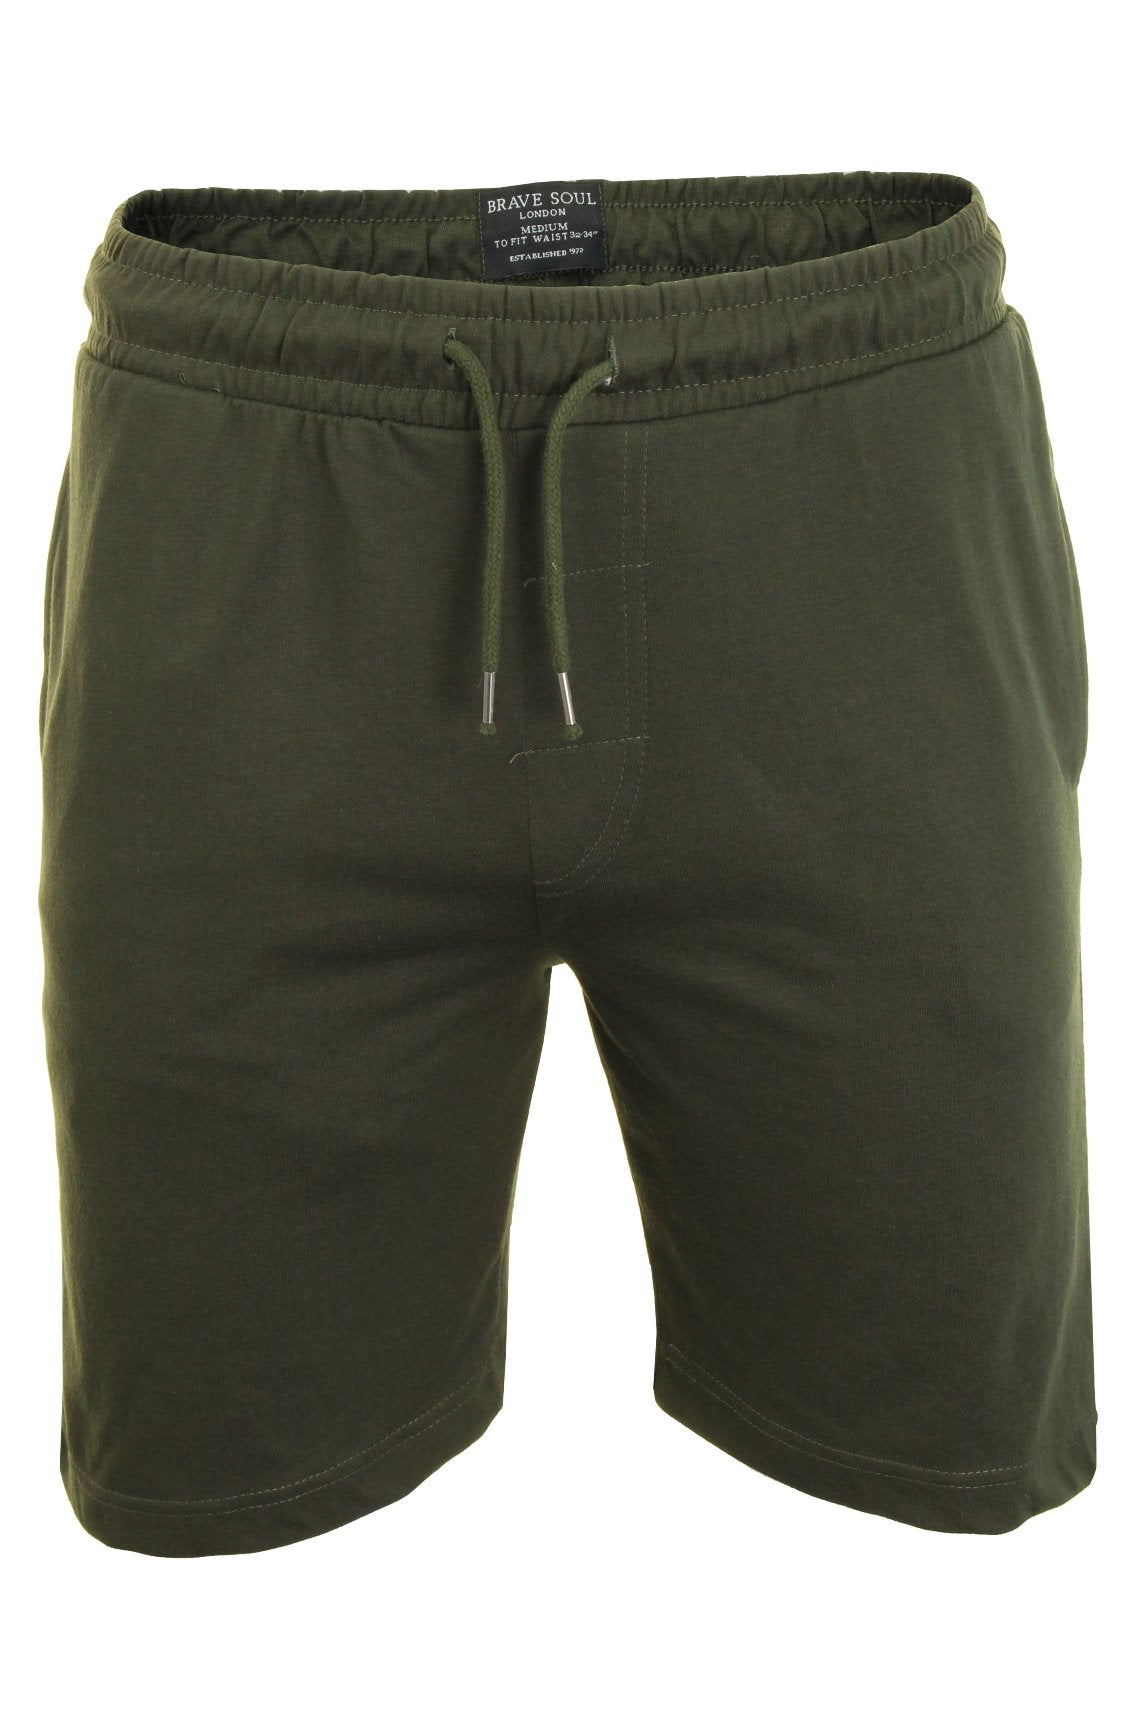 Summer Shorts by Brave Soul 'Barker' Sports Training Jogger Gym Pants-Main Image